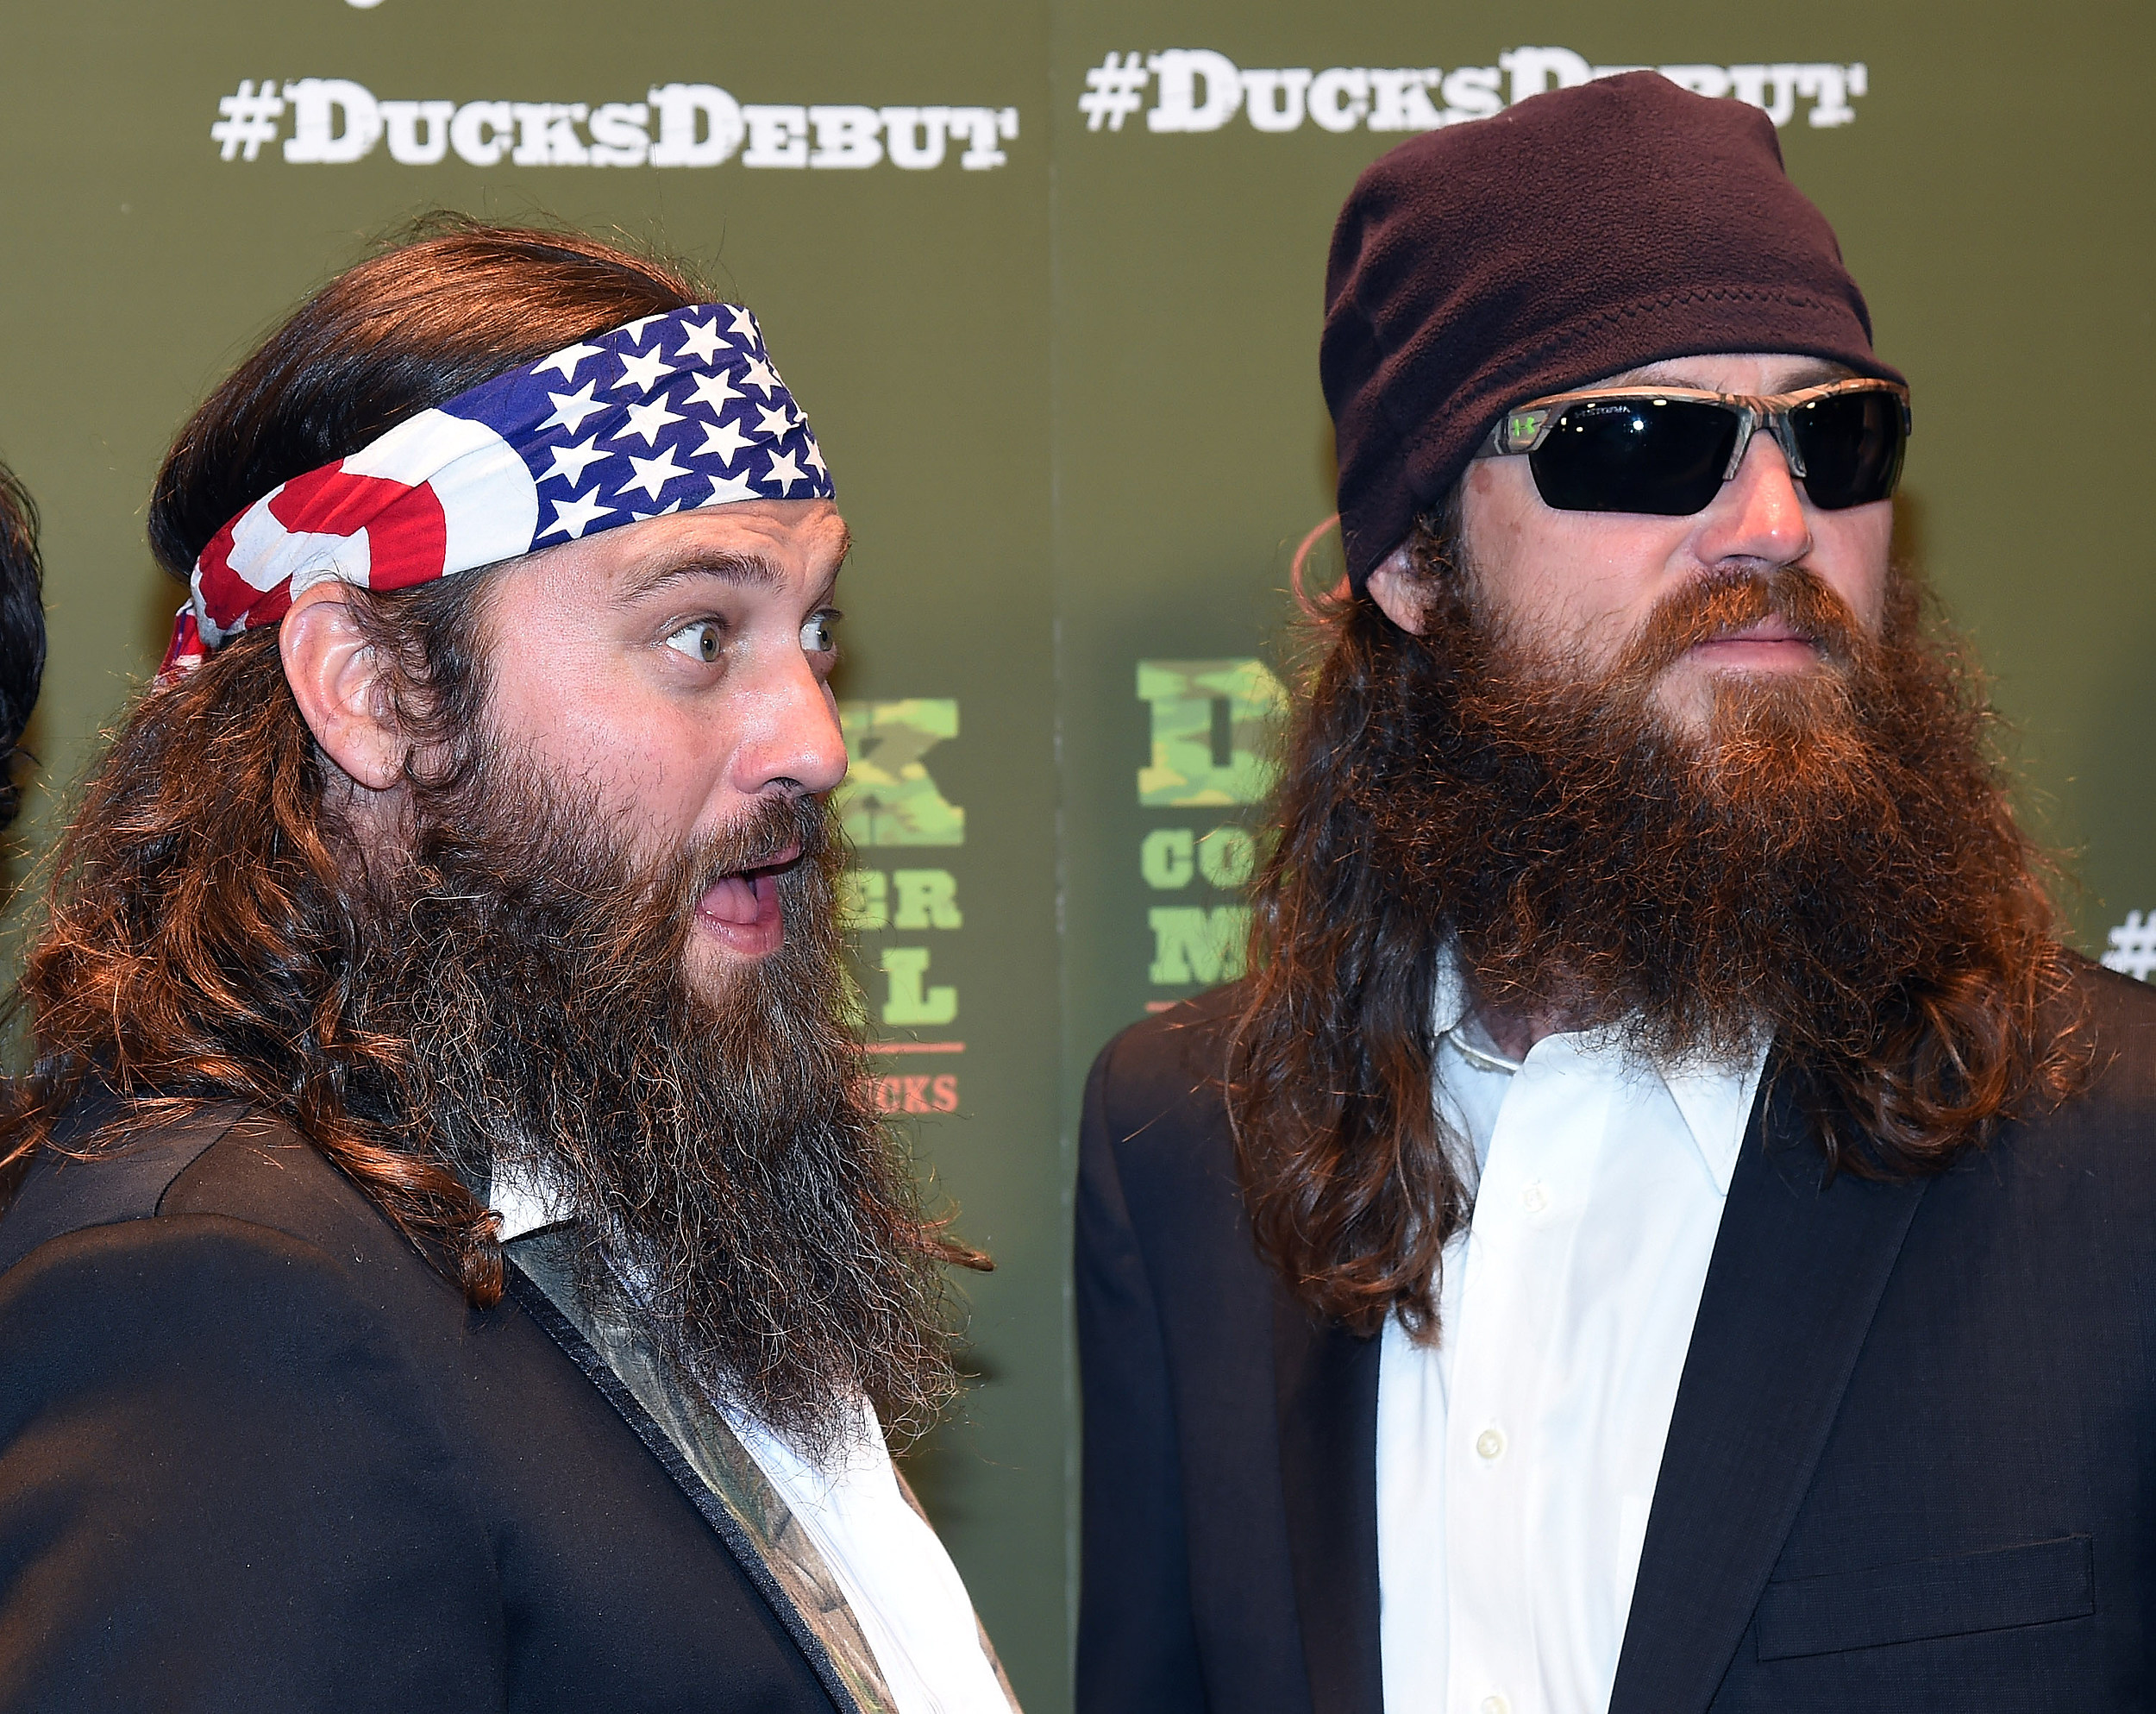 Jase Robertson From Duck Dynasty Shaved His Beard! (Pics)